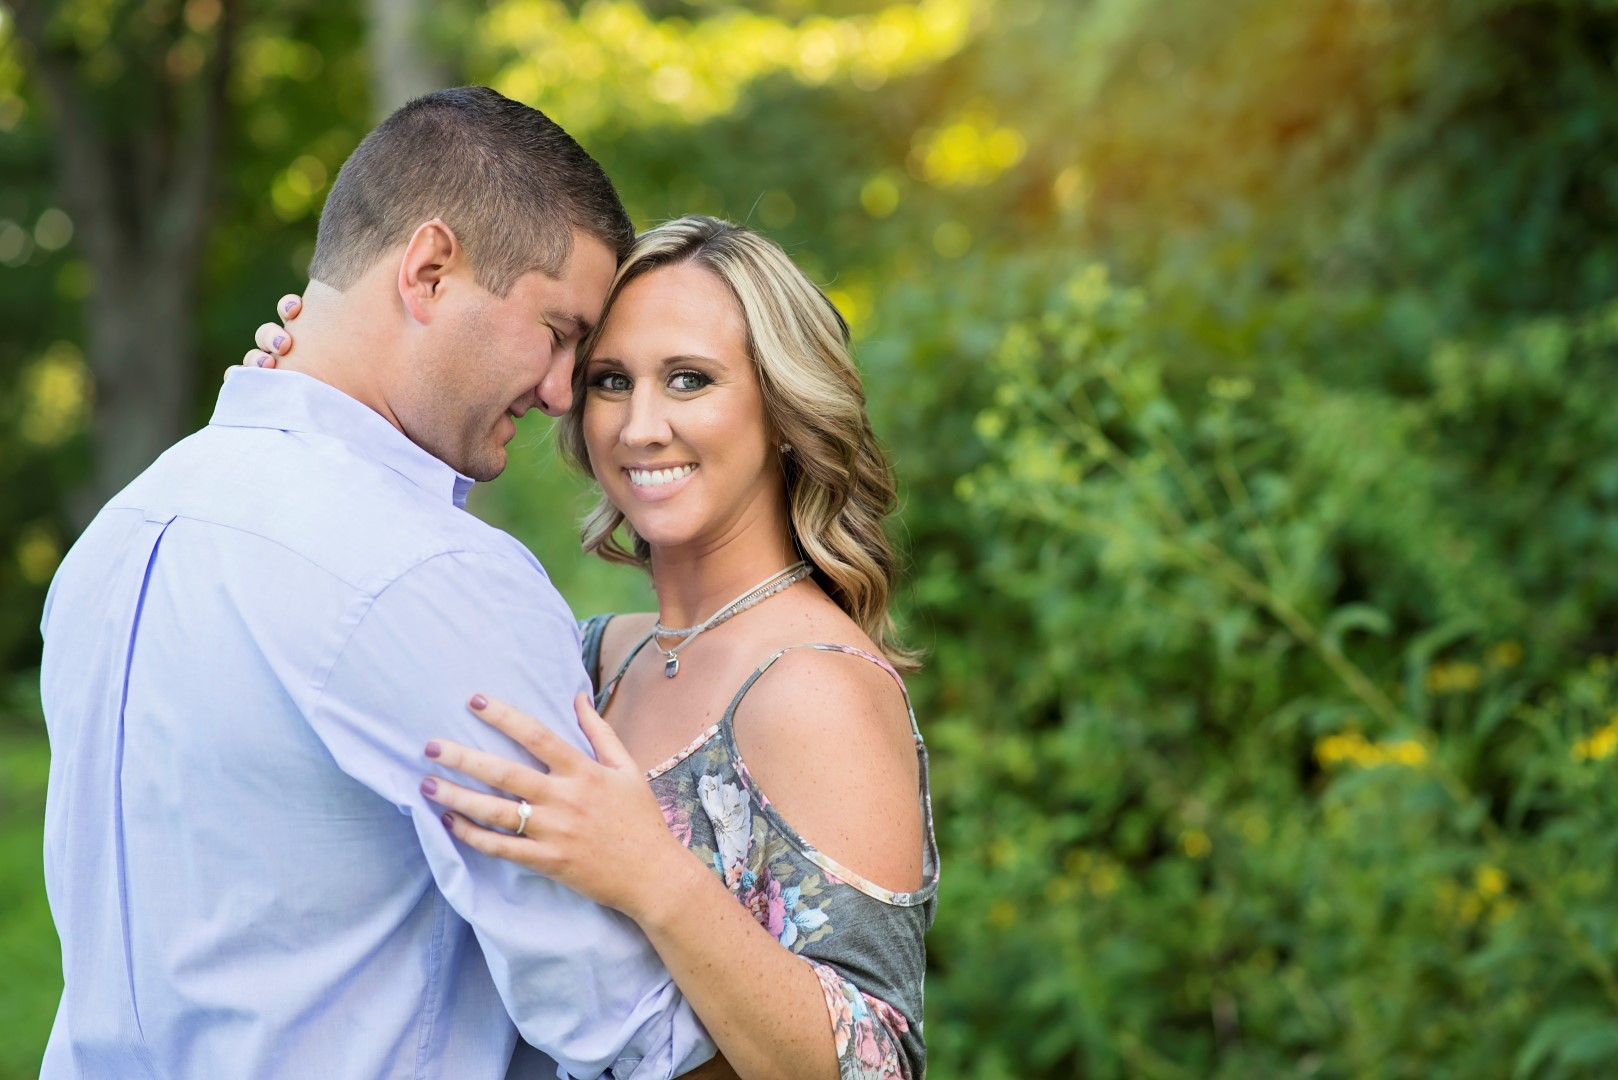 LeighAnn_Beau_Engagement_Collection_02 (Large).jpg